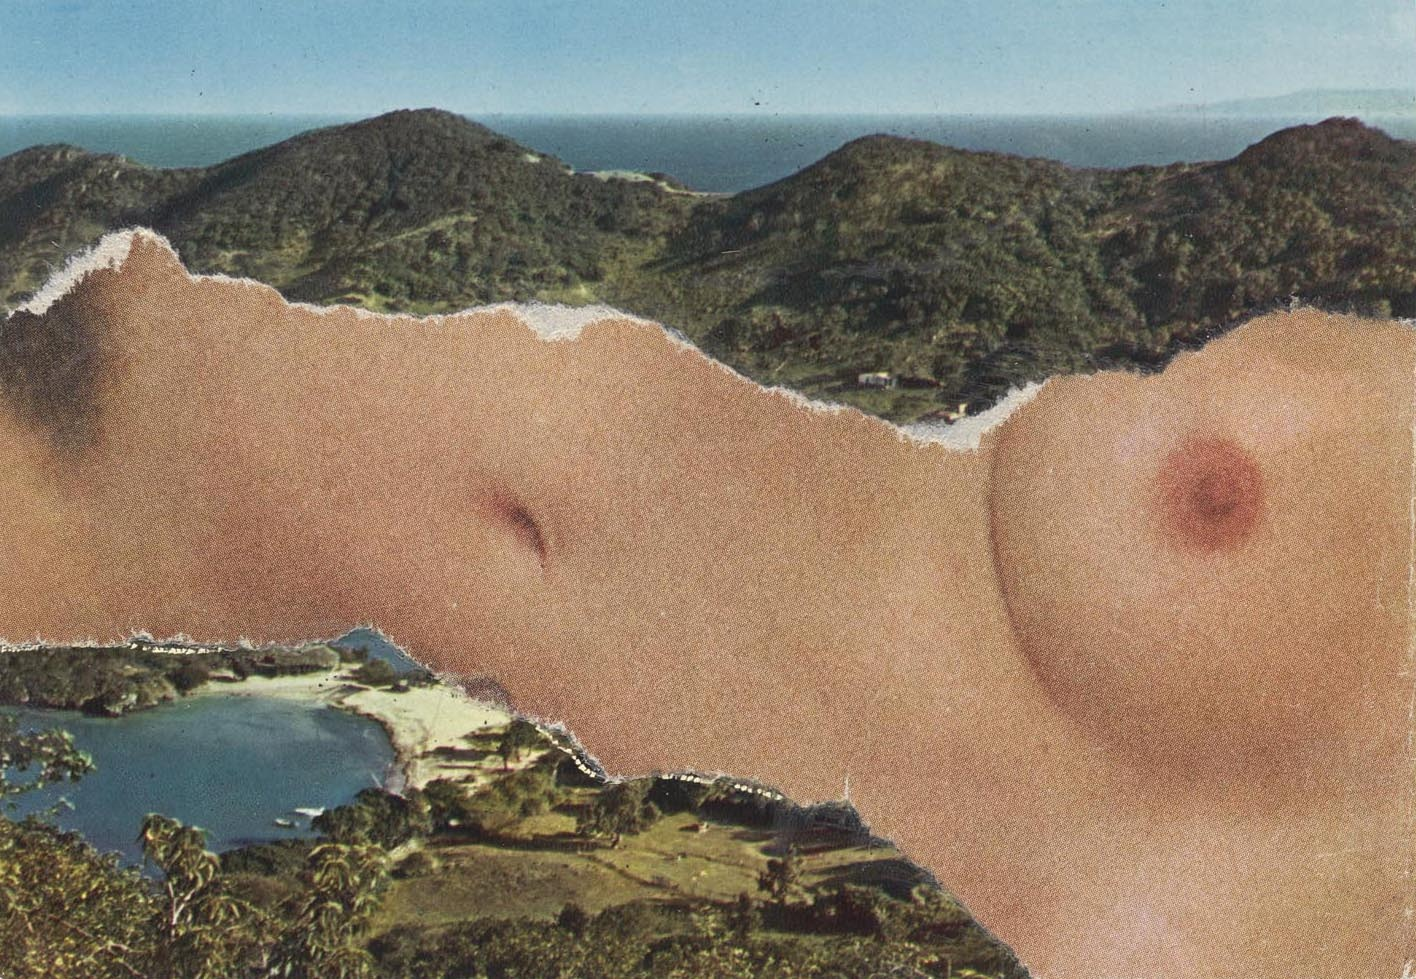 The torso and breast of a nude white individual is collaged horizontally across a hillside near water.